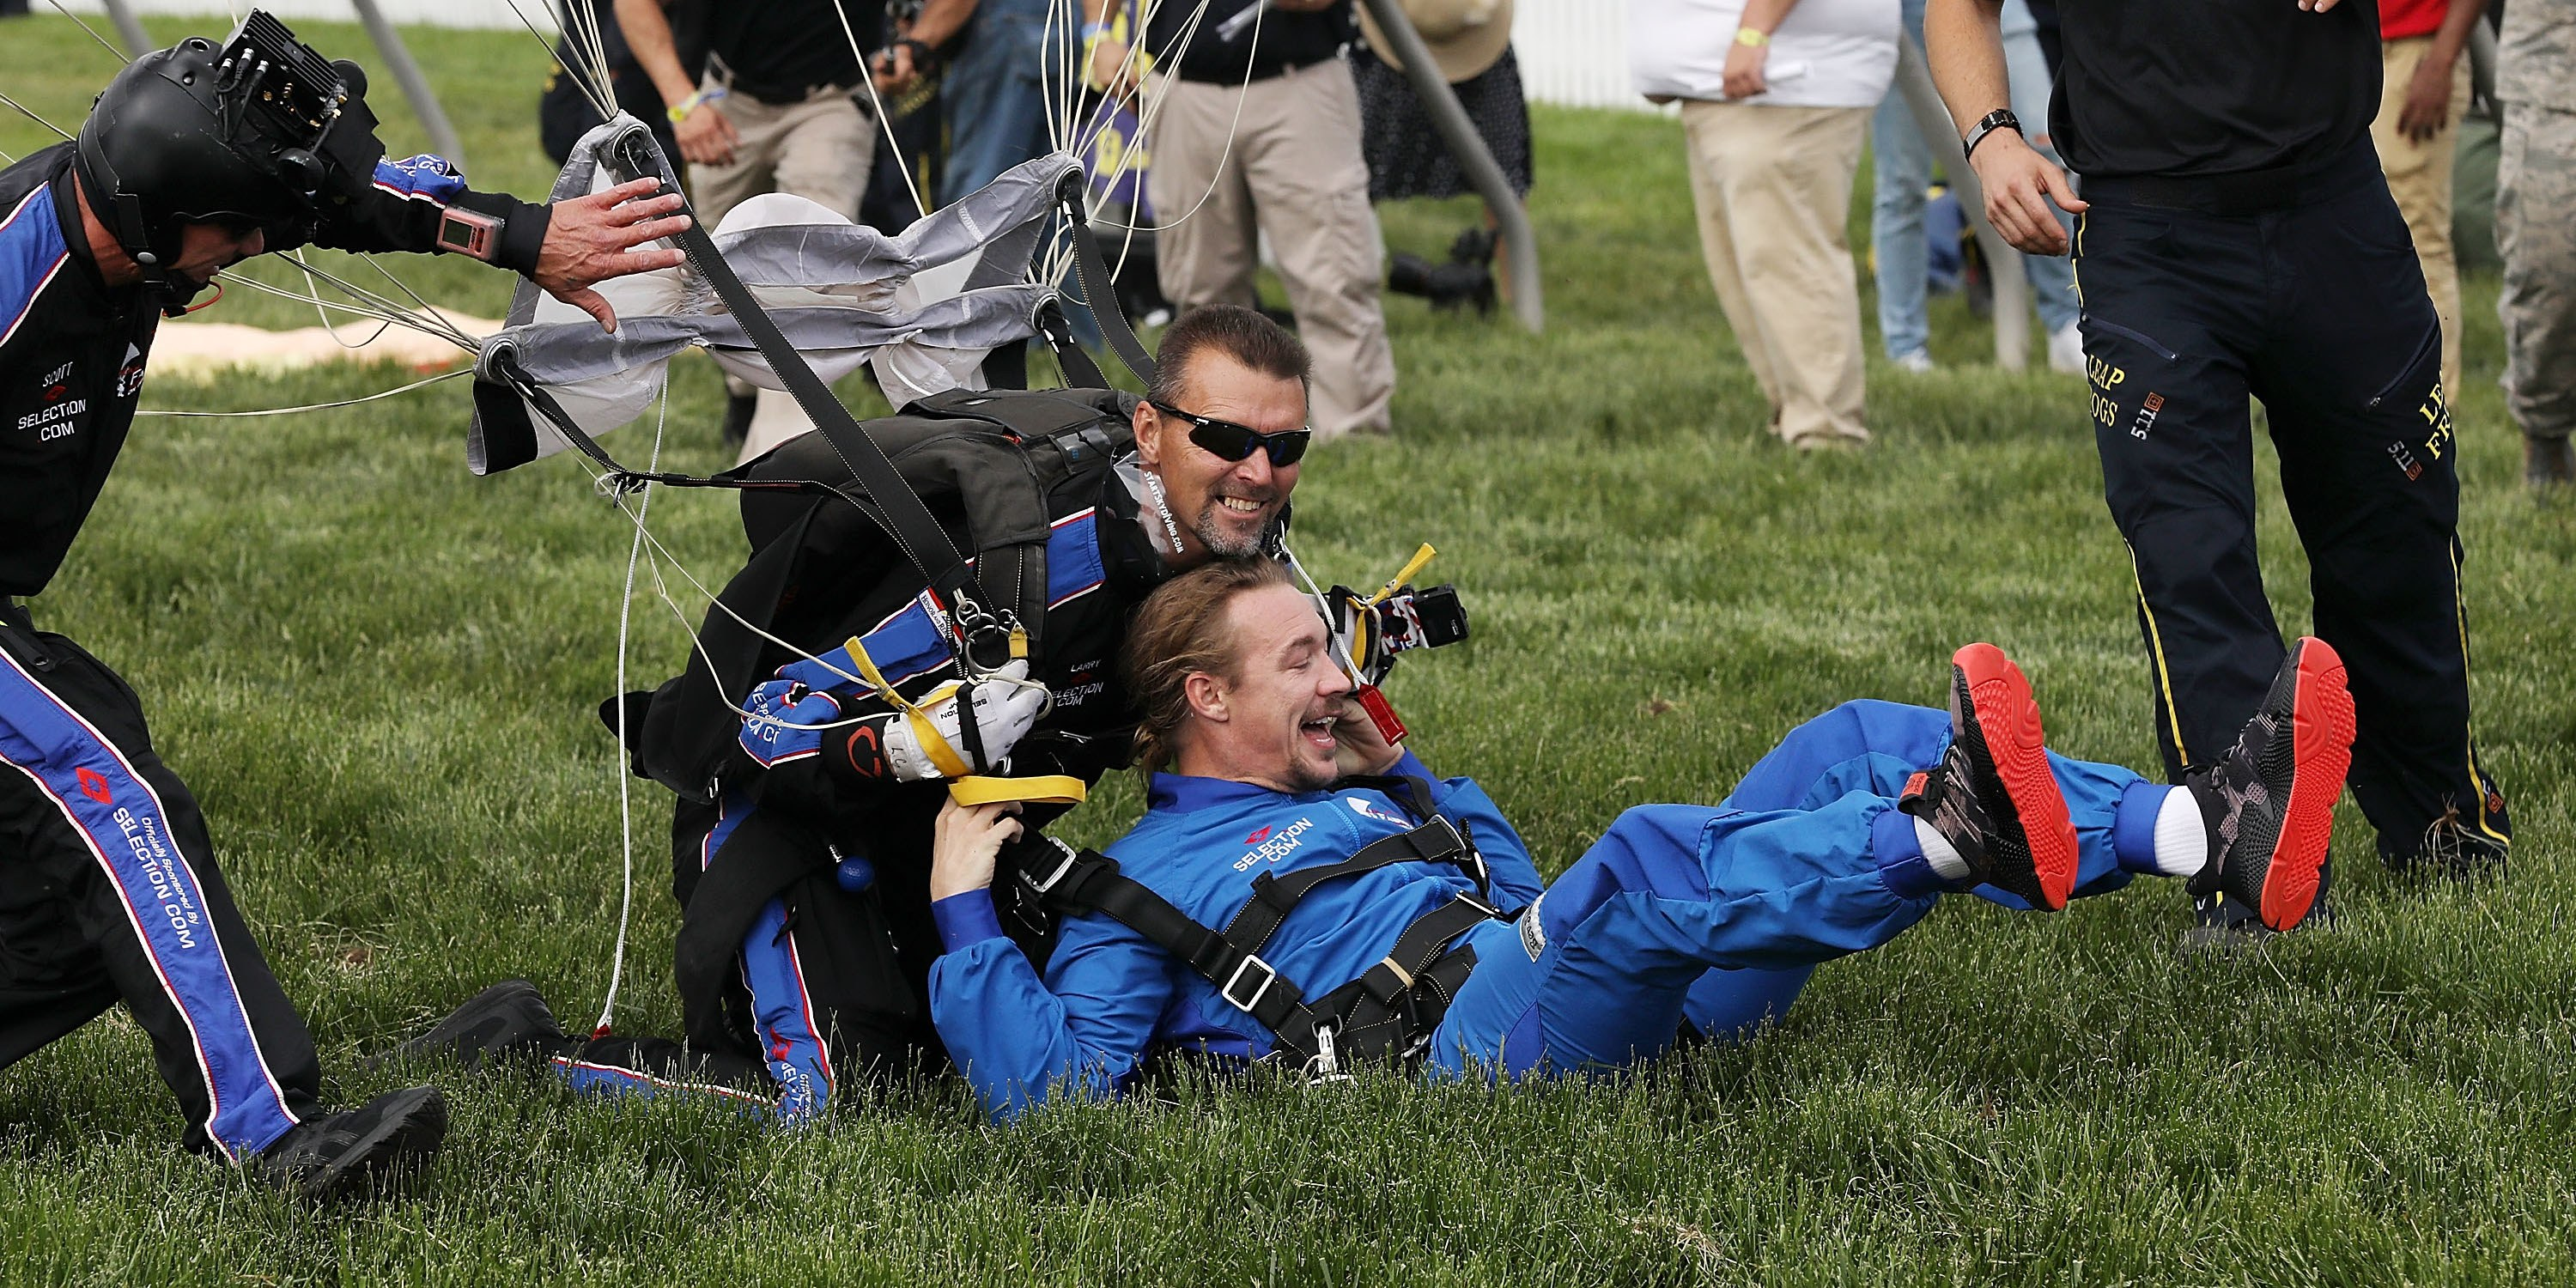 Watch Diplo Skydive Onto a Racetrack and DJ at a Horse Race